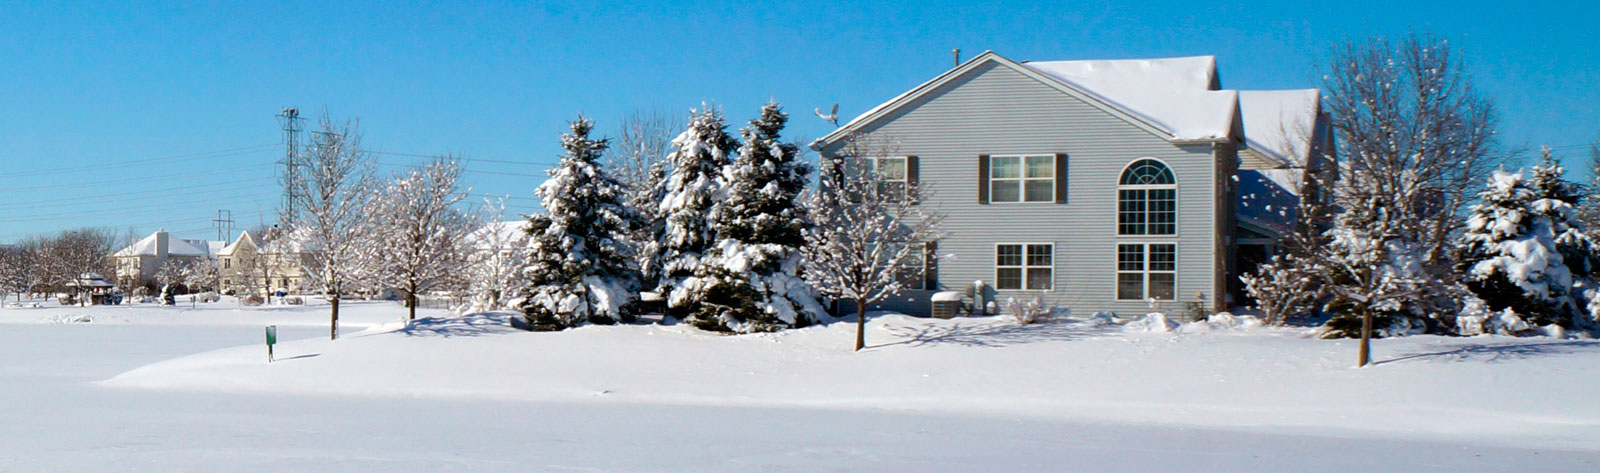 snow removal and ice management, commercial, residential show removal services